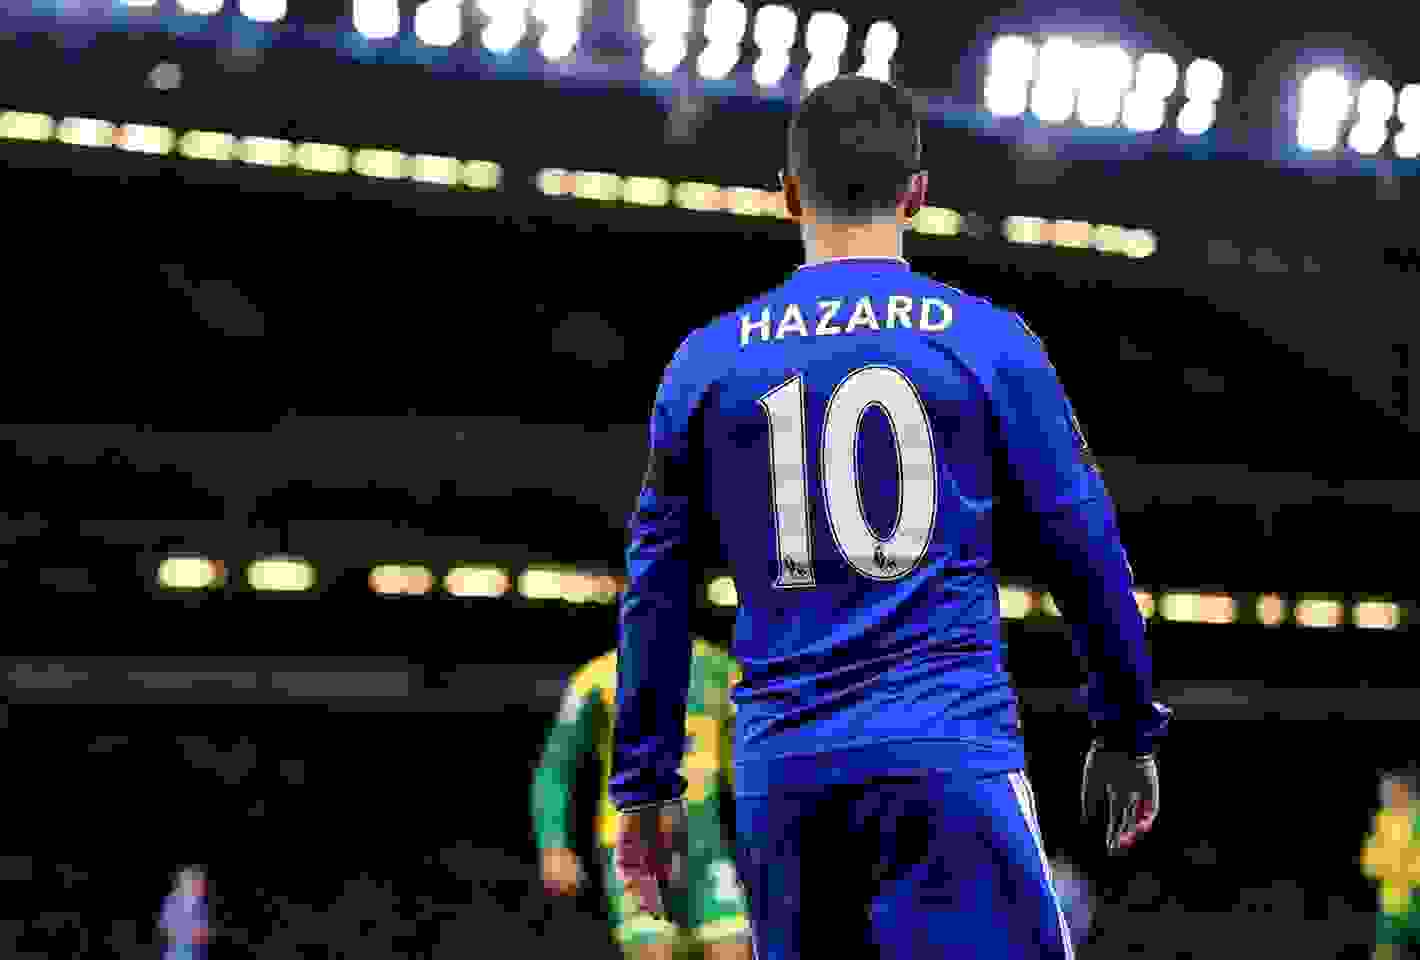 Eden Hazard + Londres = Travel2Sports